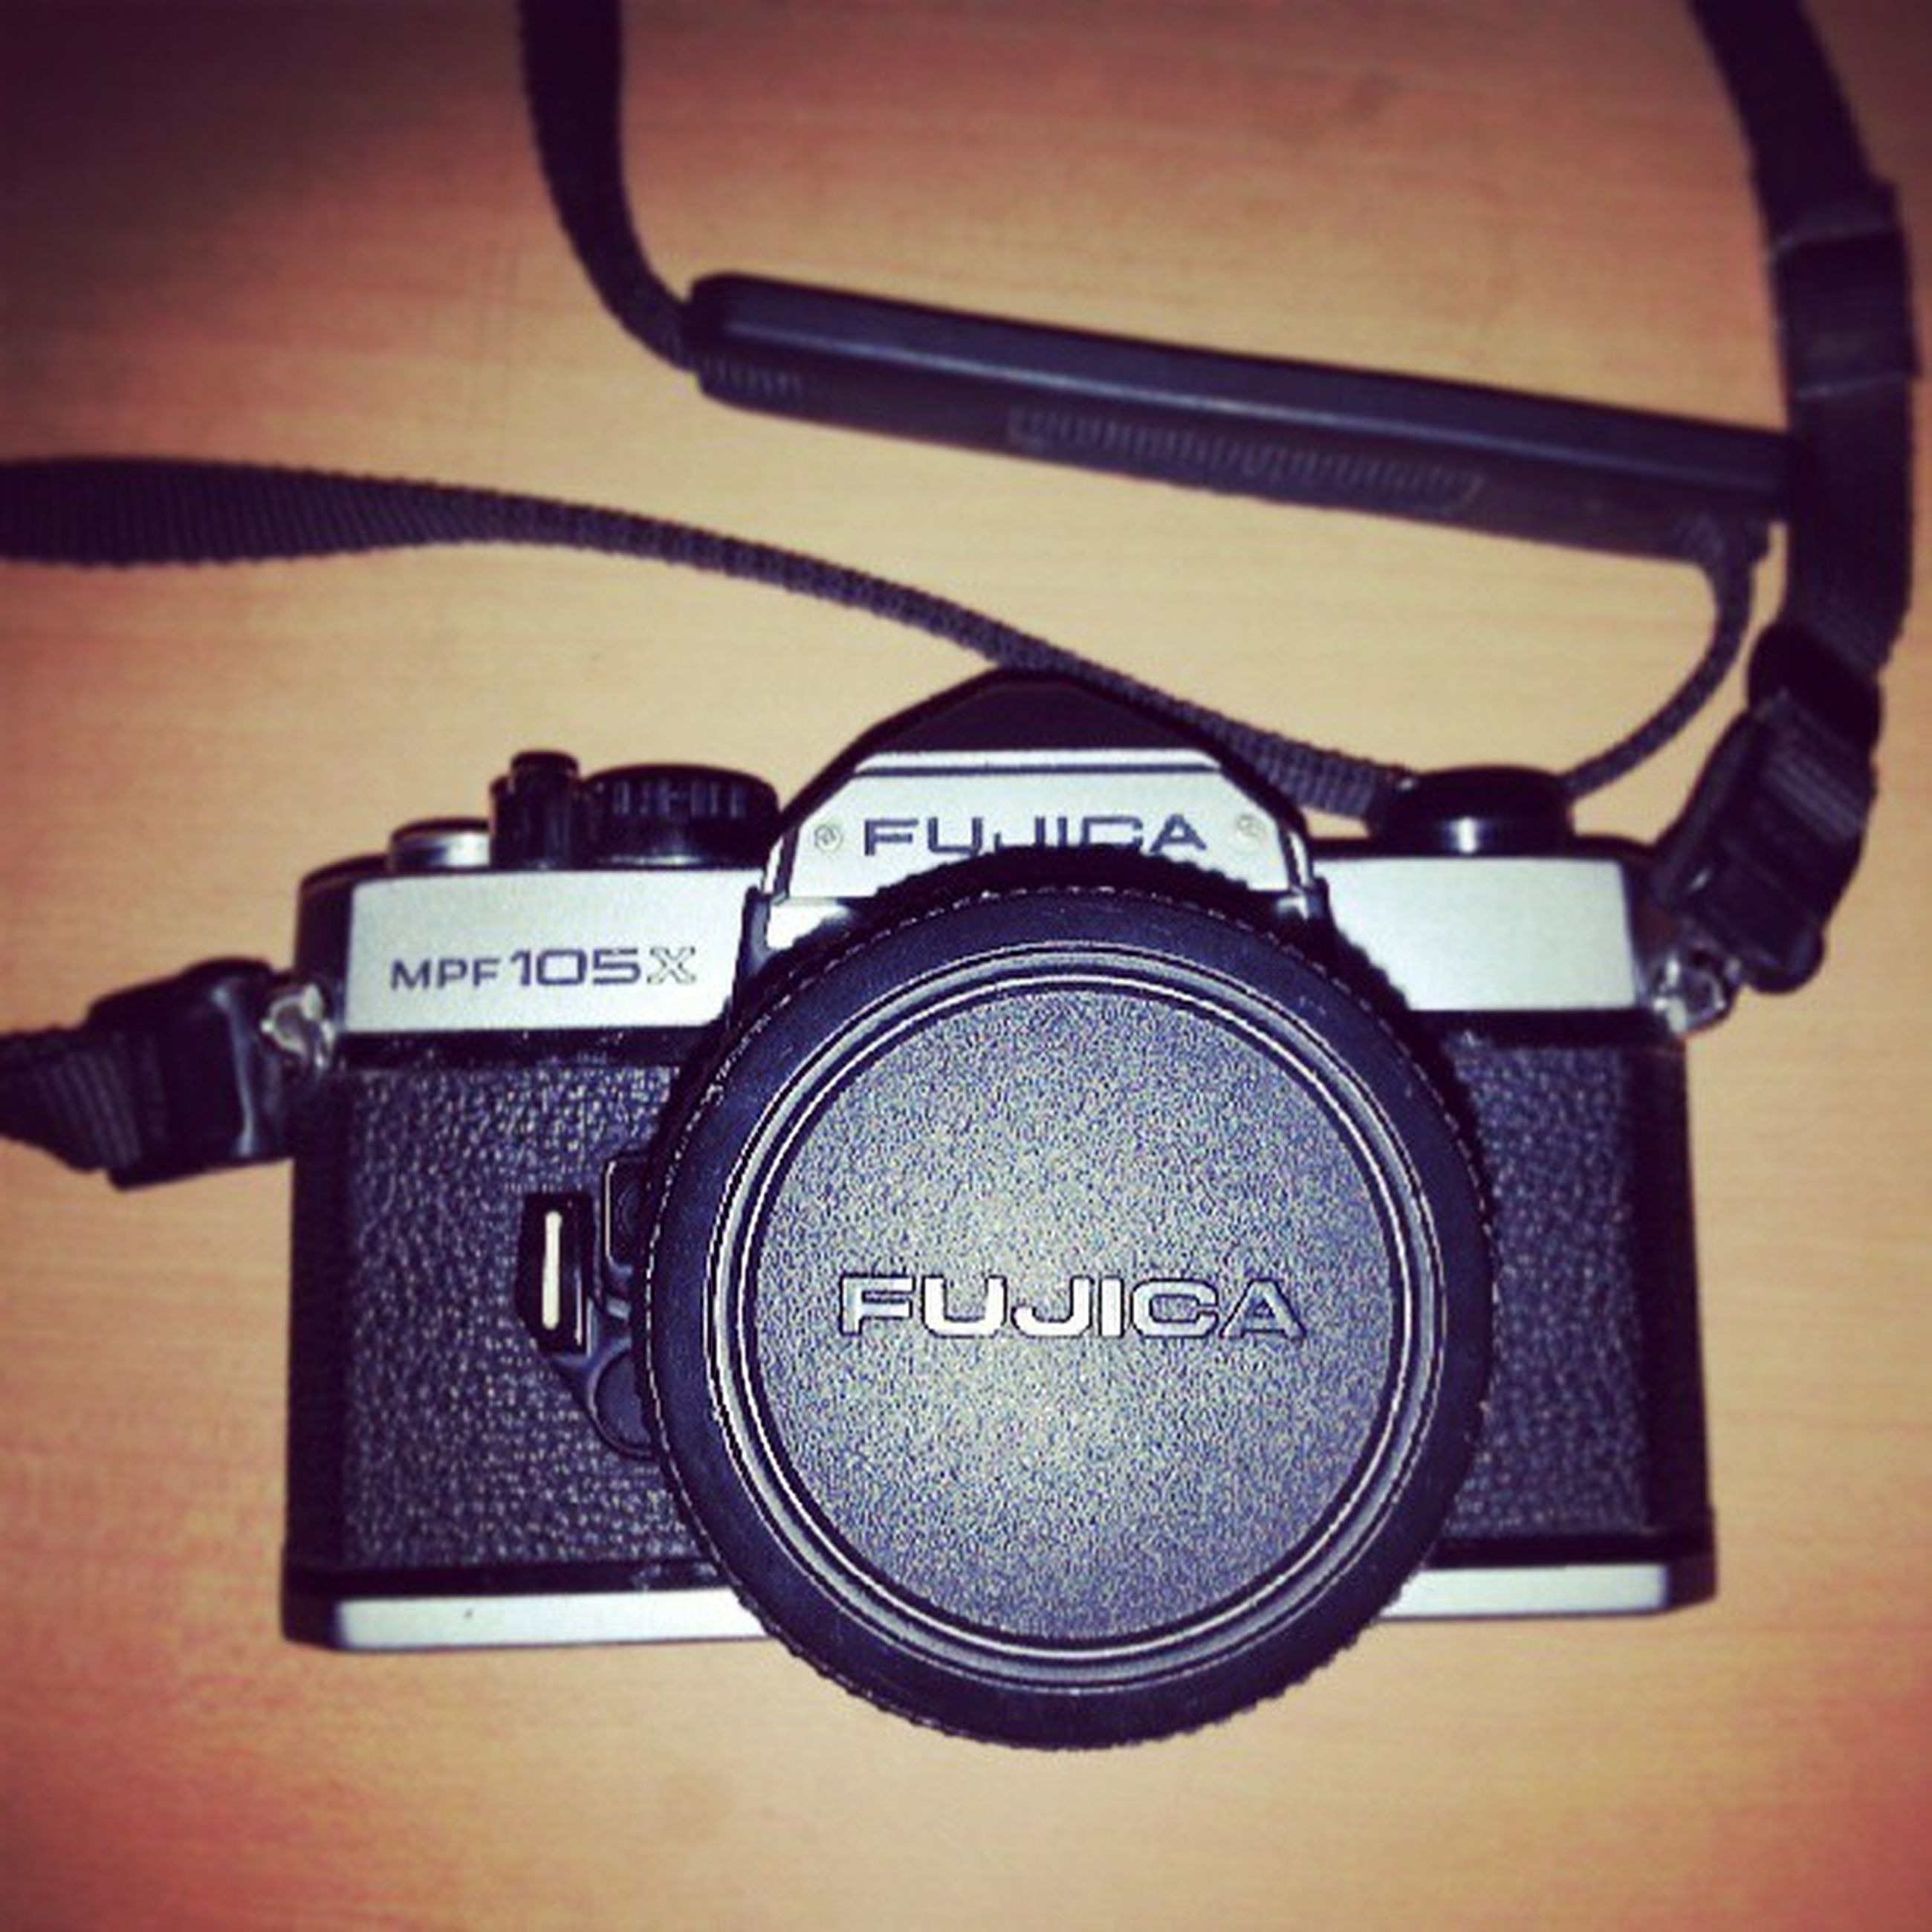 technology, communication, indoors, photography themes, close-up, wireless technology, camera - photographic equipment, old-fashioned, connection, retro styled, music, number, lens - optical instrument, single object, metal, arts culture and entertainment, digital camera, photographing, equipment, telephone